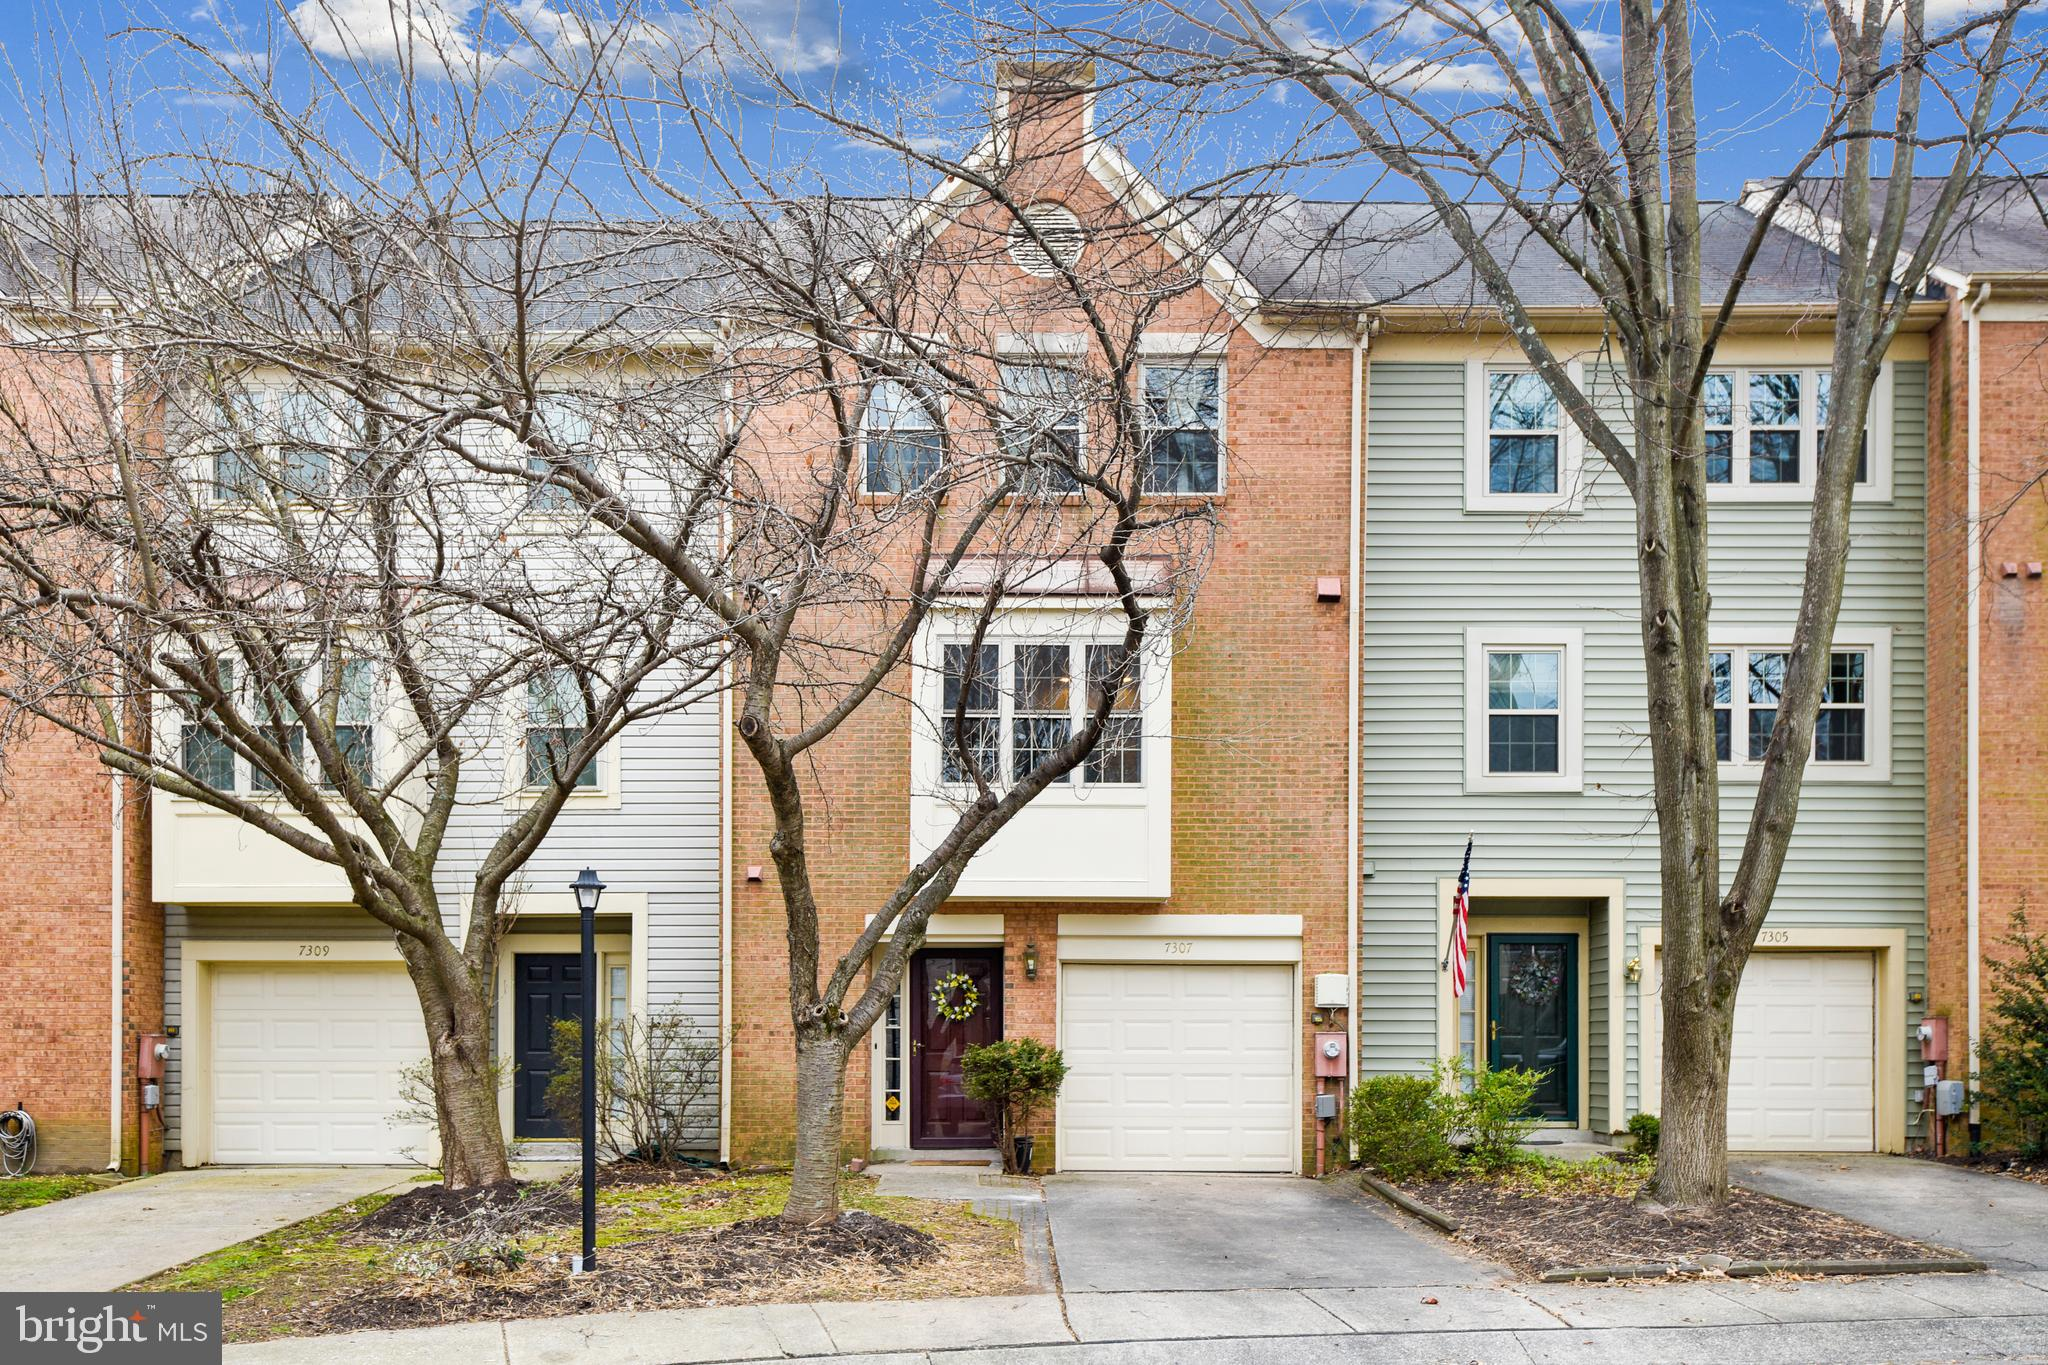 7307 EDEN BROOK DRIVE A-4, COLUMBIA, MD 21046